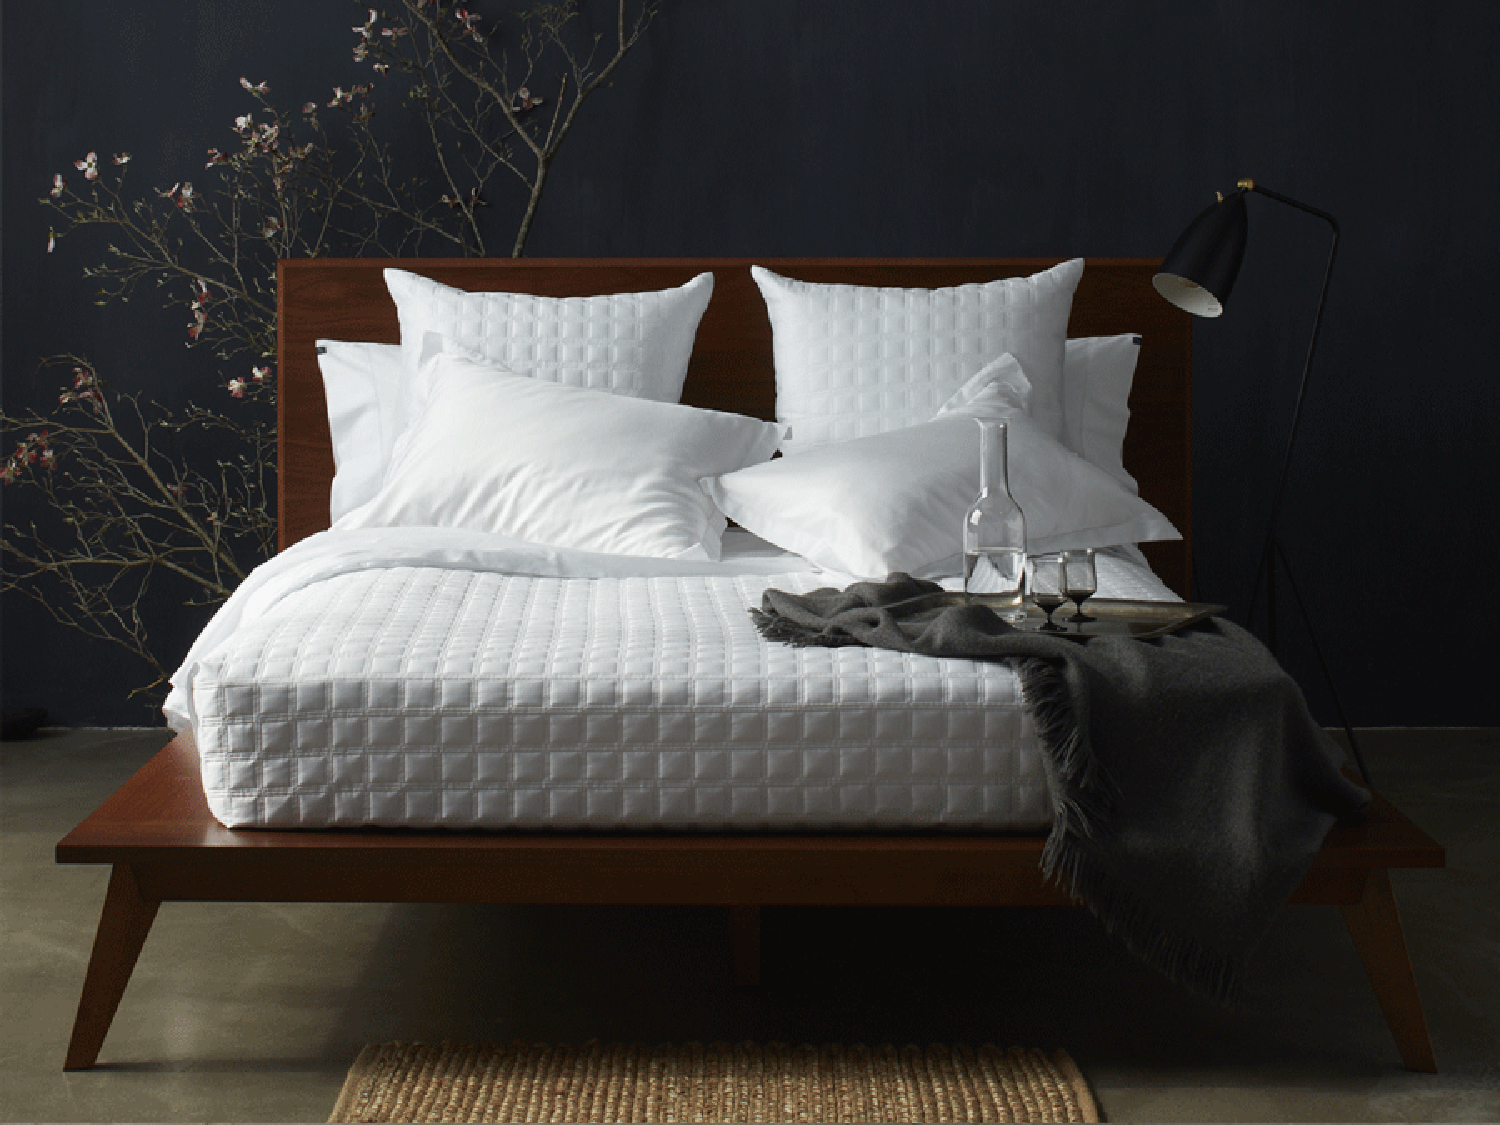 The 10 Best Bedding Sets And Sheets Of 2020 To Order Now Southern Living